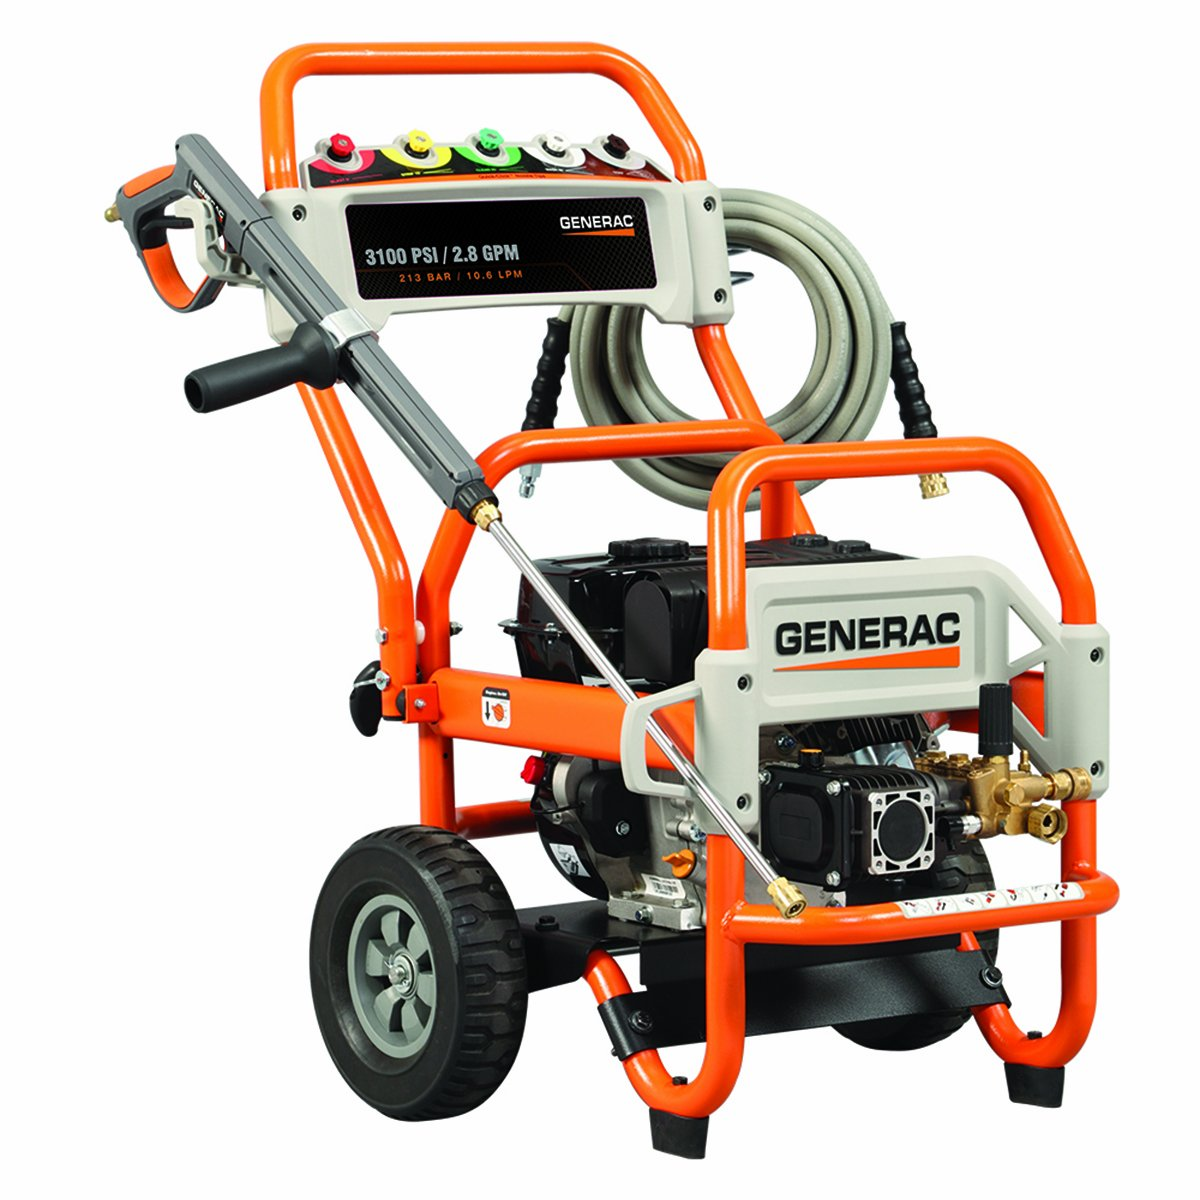 Generac 5994 3,100 PSI 2.8 GPM 212cc OHV Gas Powered Commercial Pressure Washer (CARB Compliant) at Sears.com